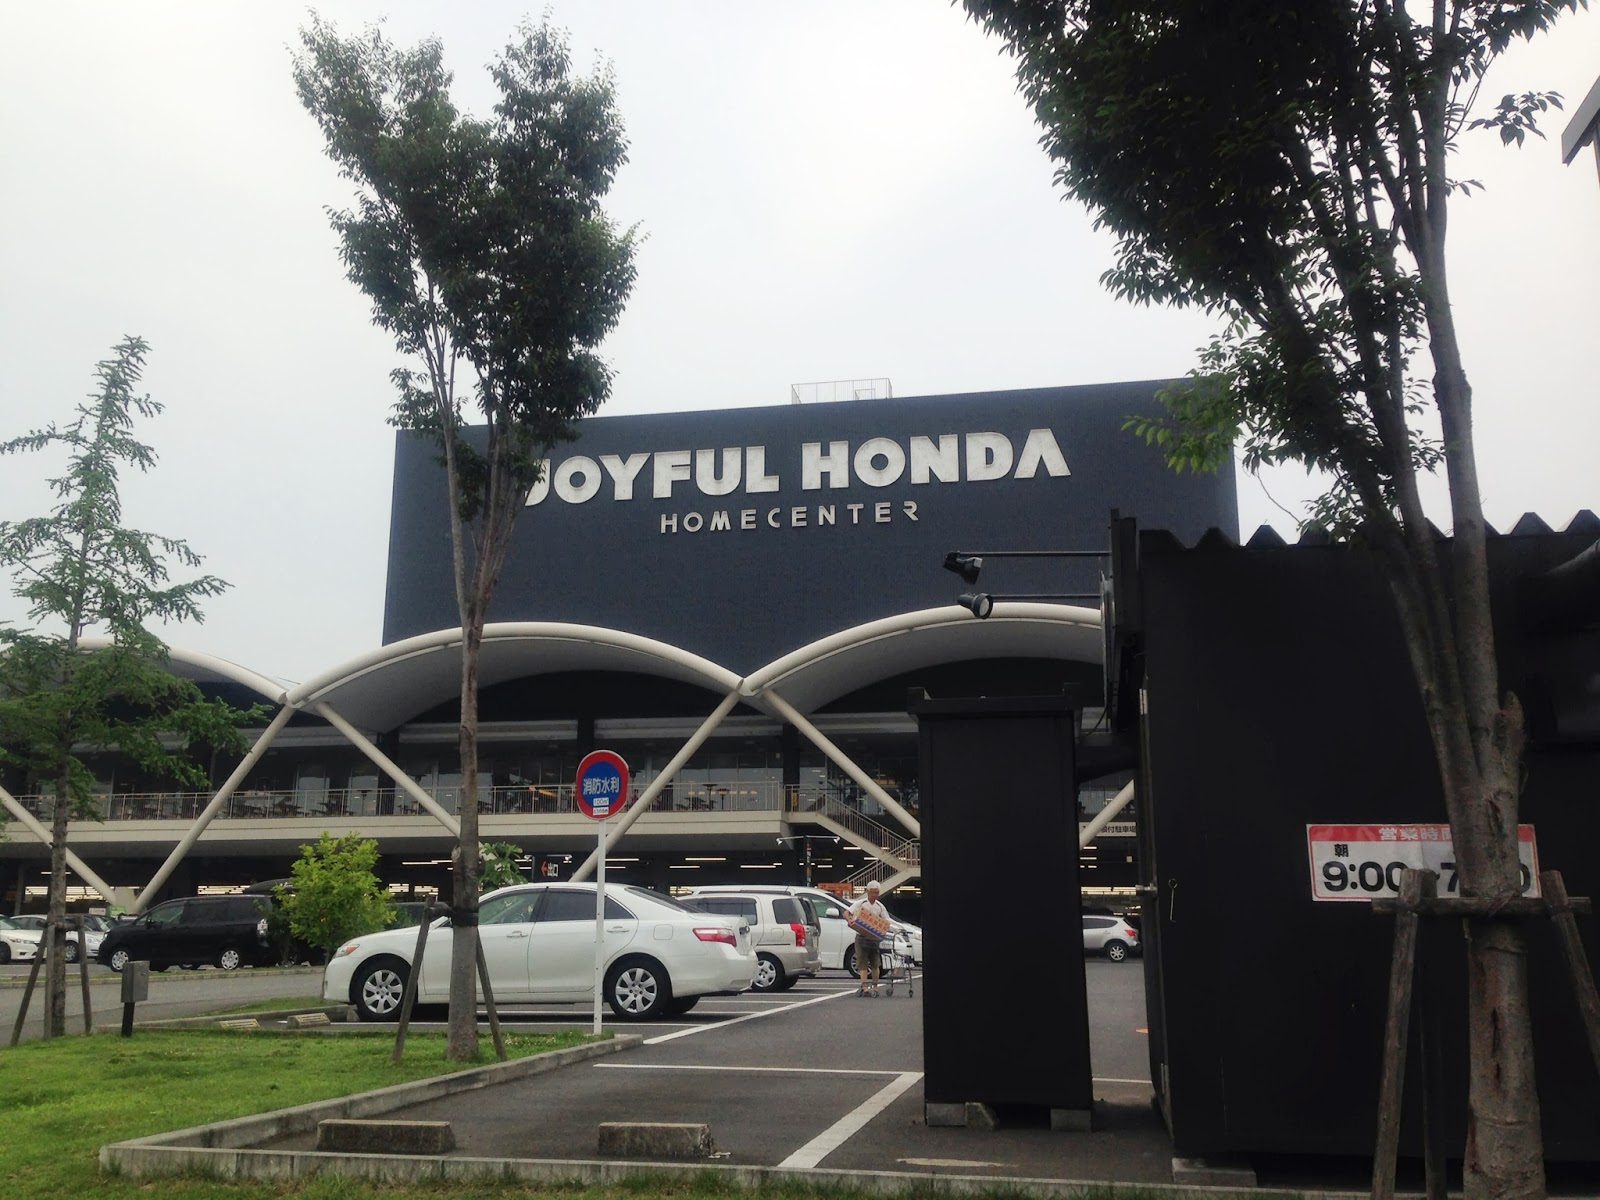 Joyful Honda, serious one stop shopping - Cowan Travels